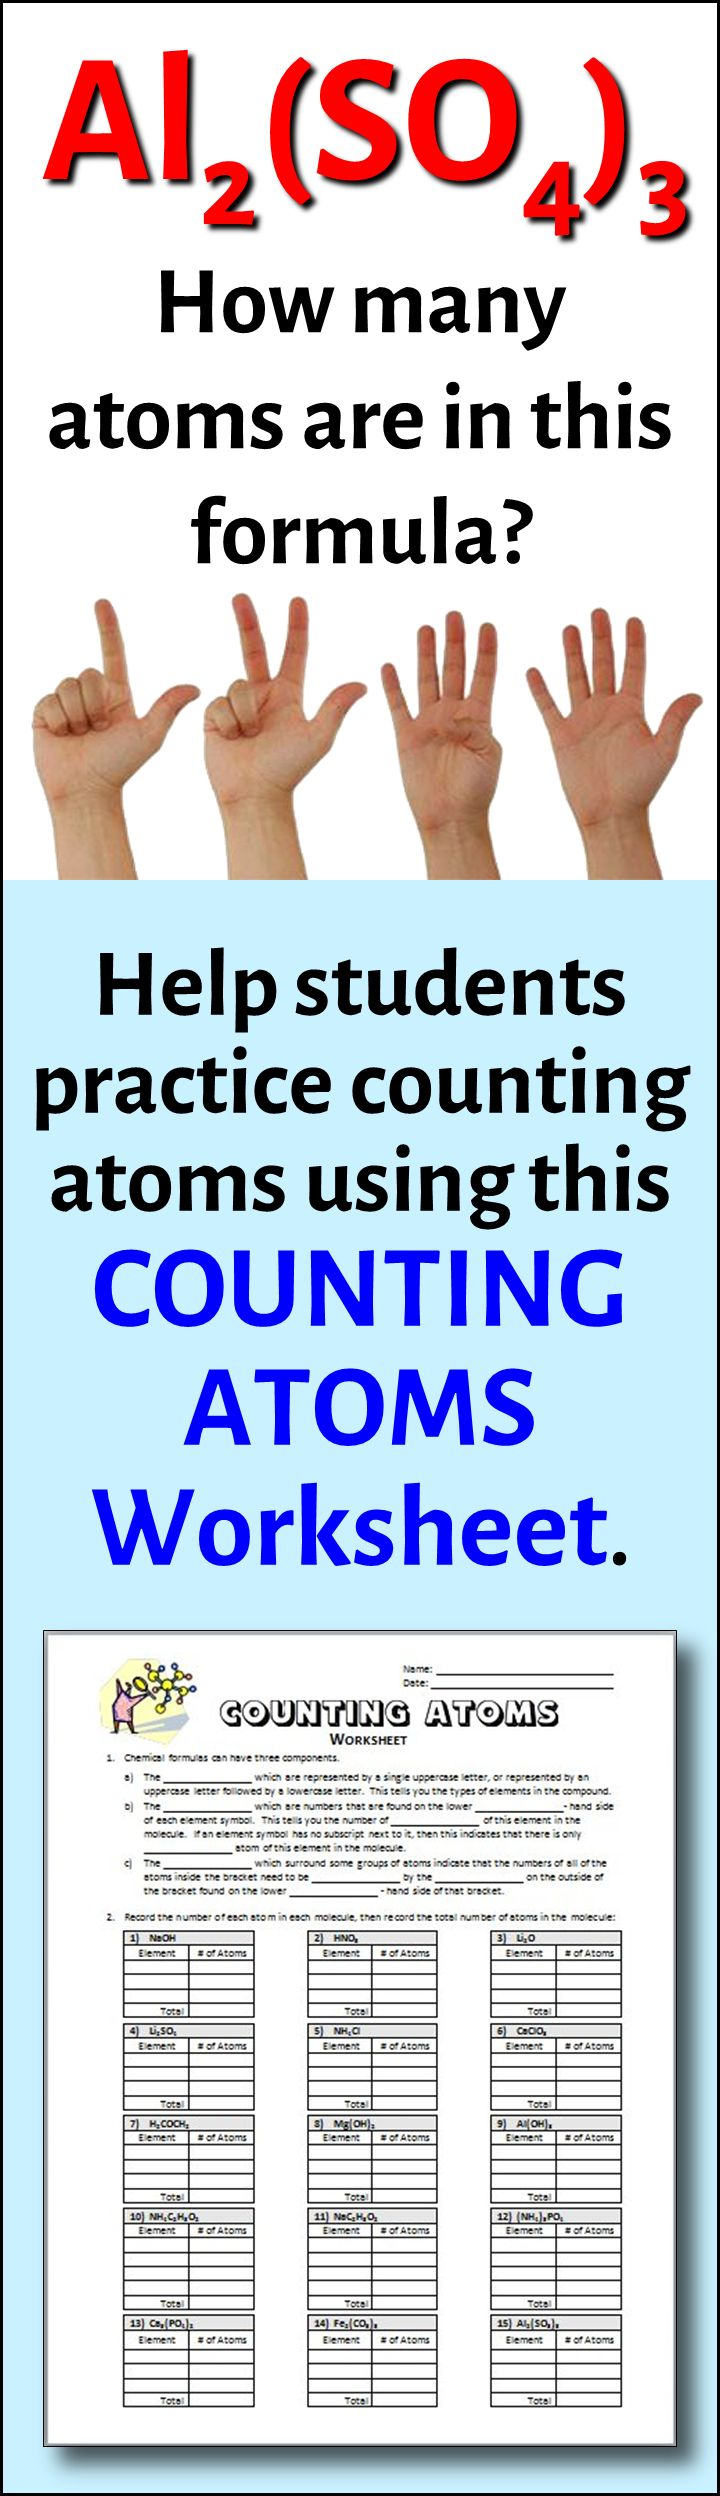 Counting Atoms Worksheet {Editable} Equation, Count and